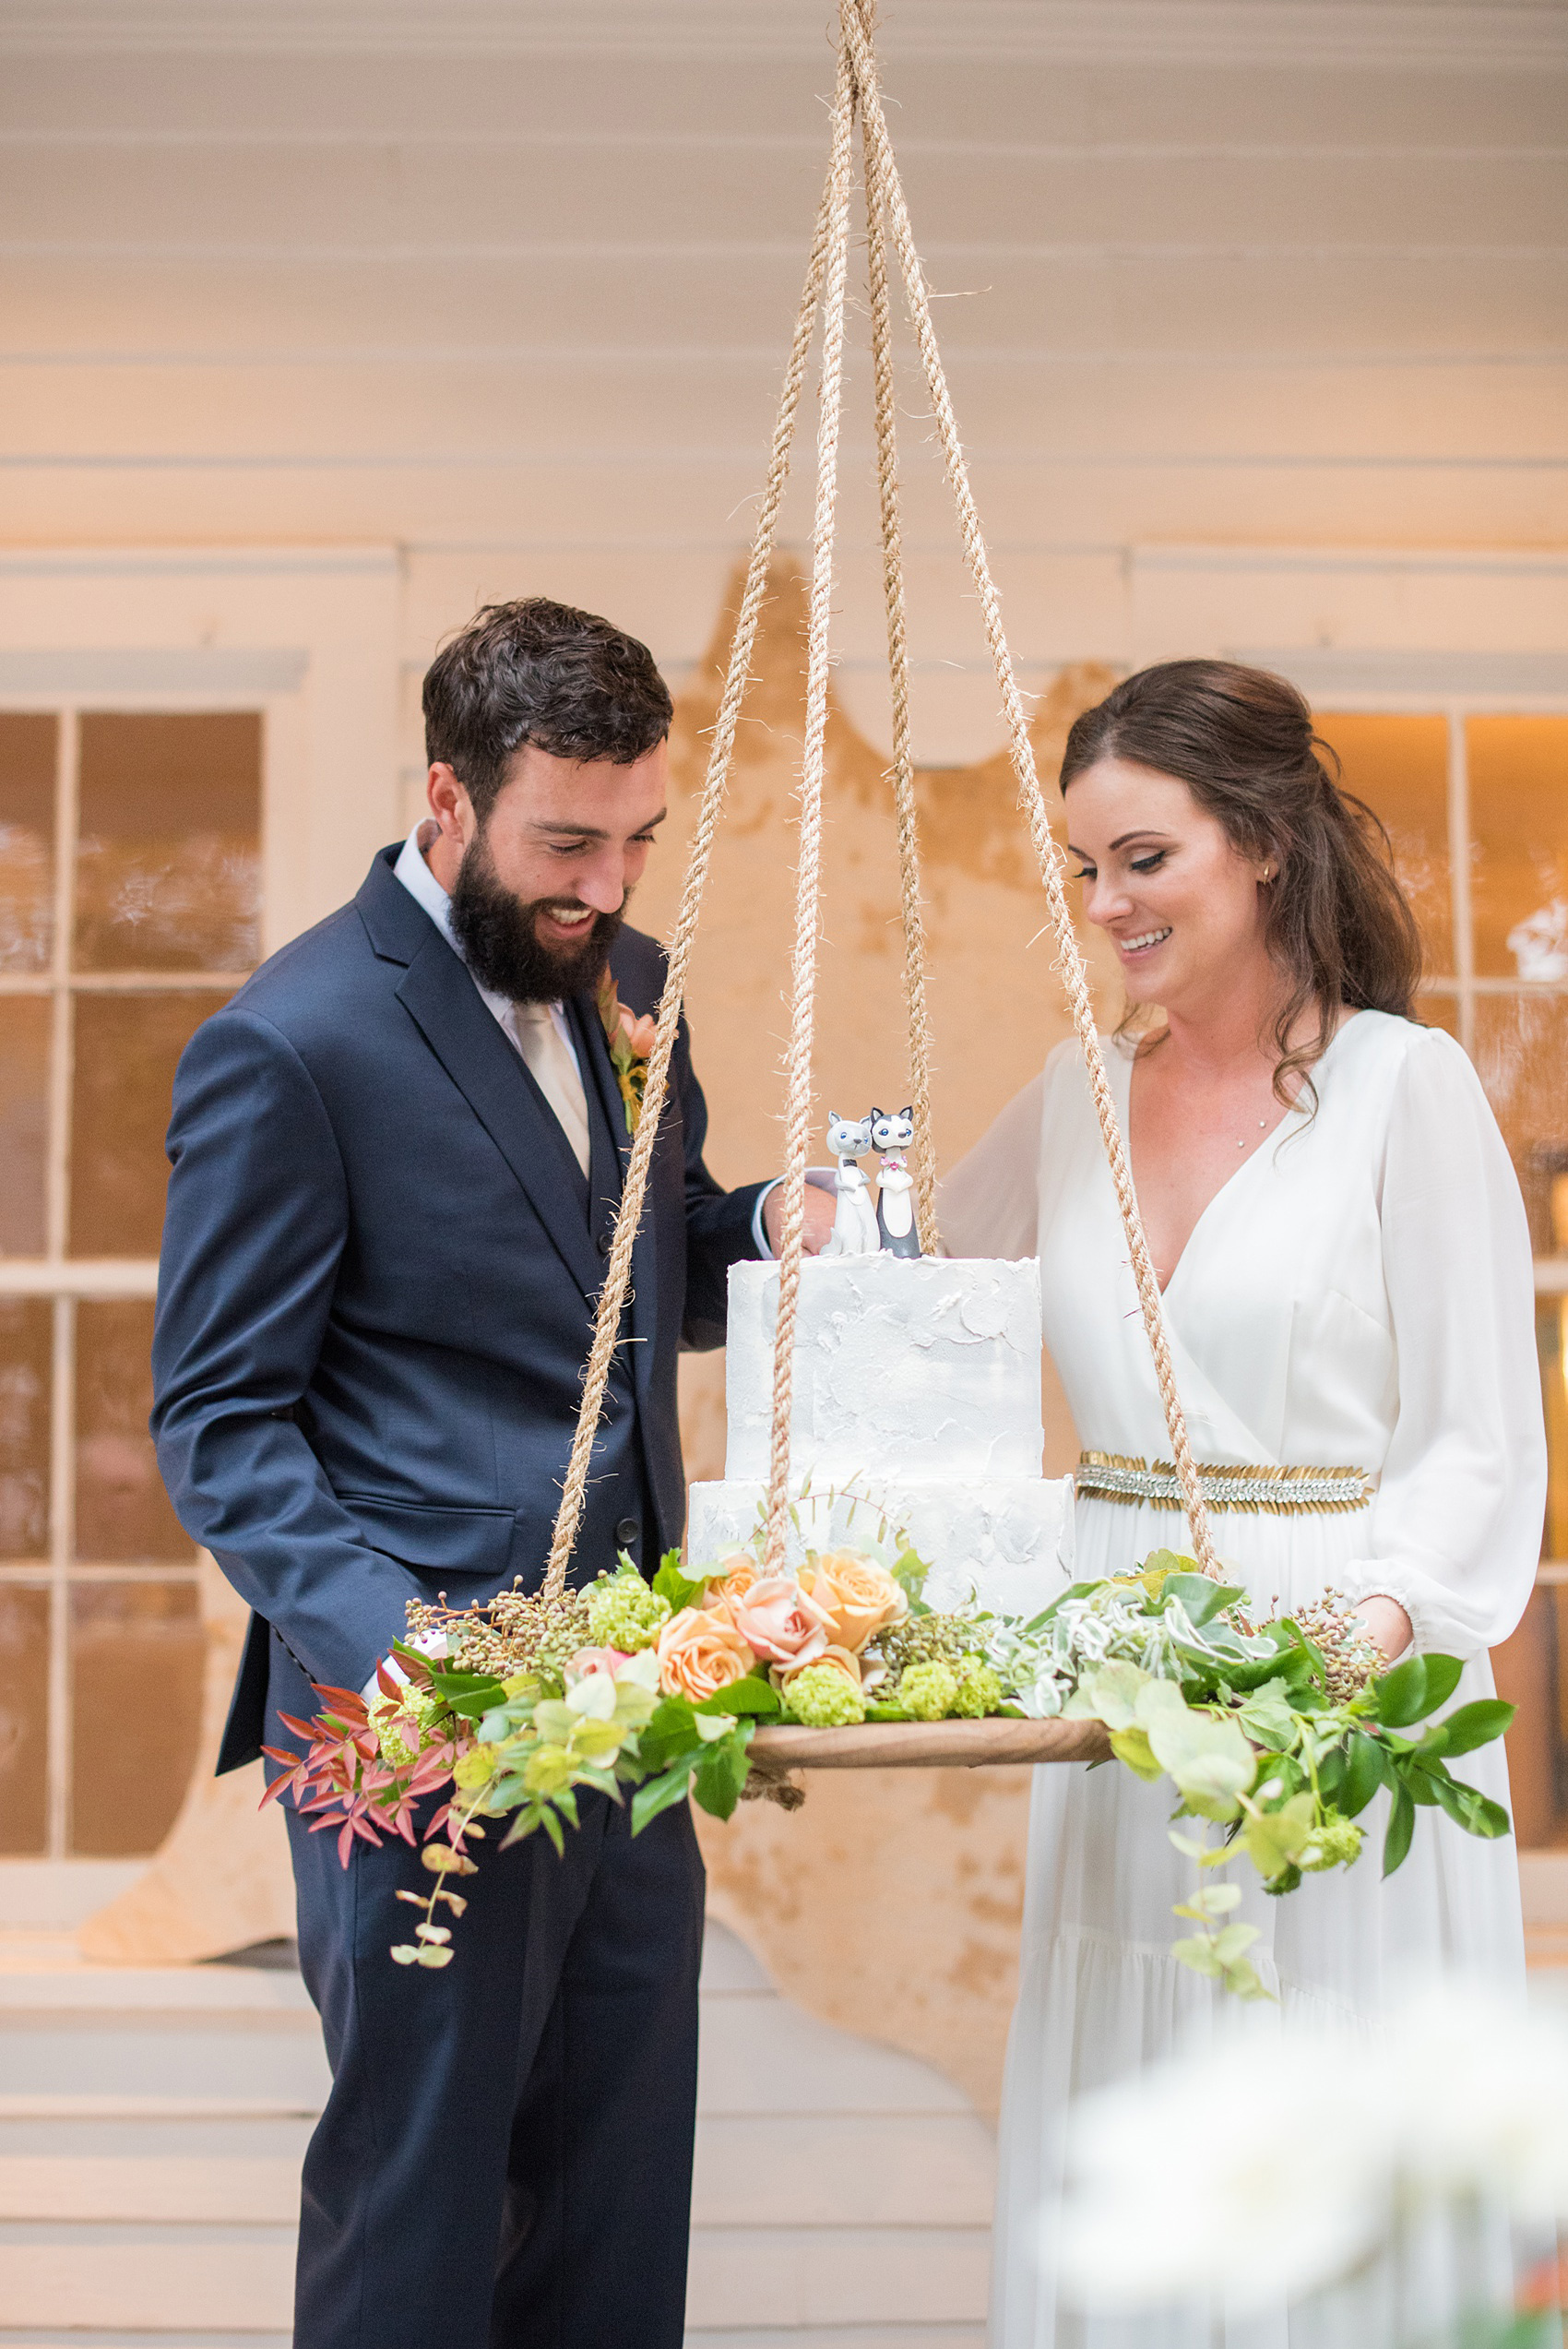 Mikkel Paige Photography photos from a wedding at Leslie-Alford Mims House in North Carolina. Picture of the bride and groom cutting their concrete cake with clay animal cake topper, suspended from the venue on a rope display adorned with flowers.